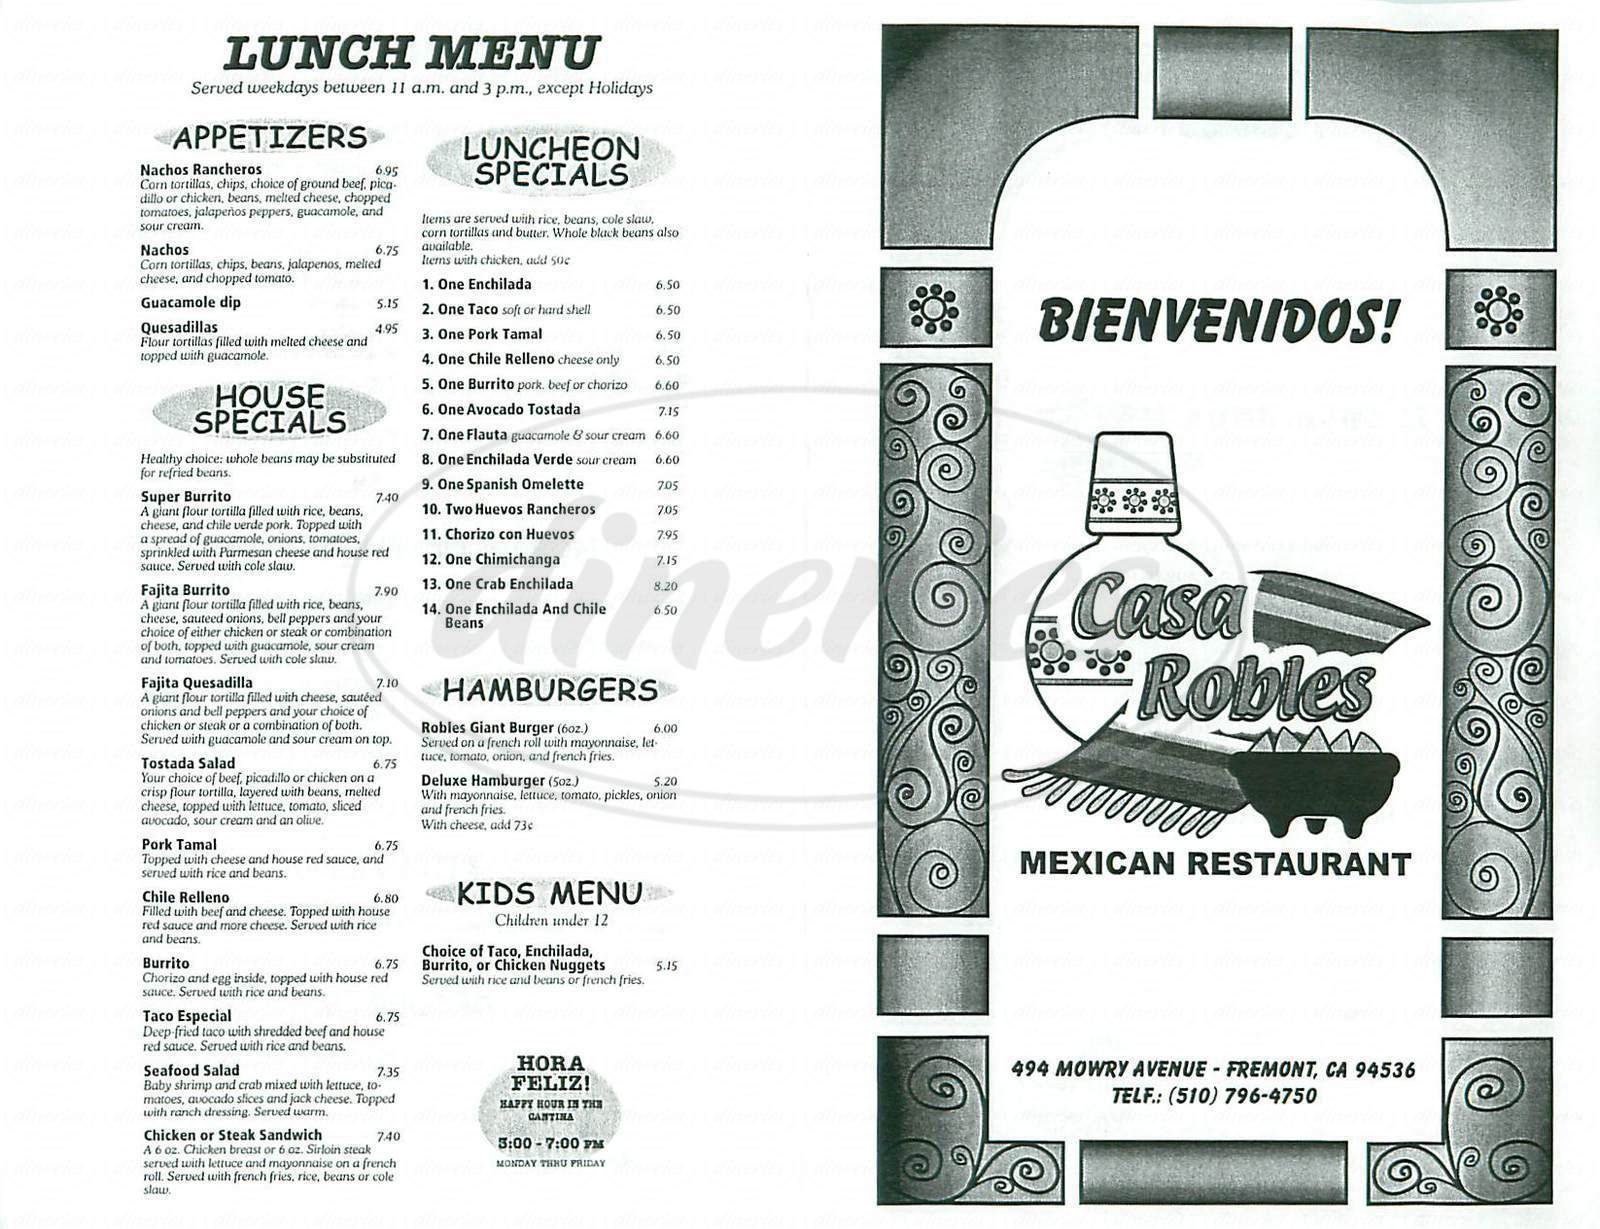 menu for Casa Robles